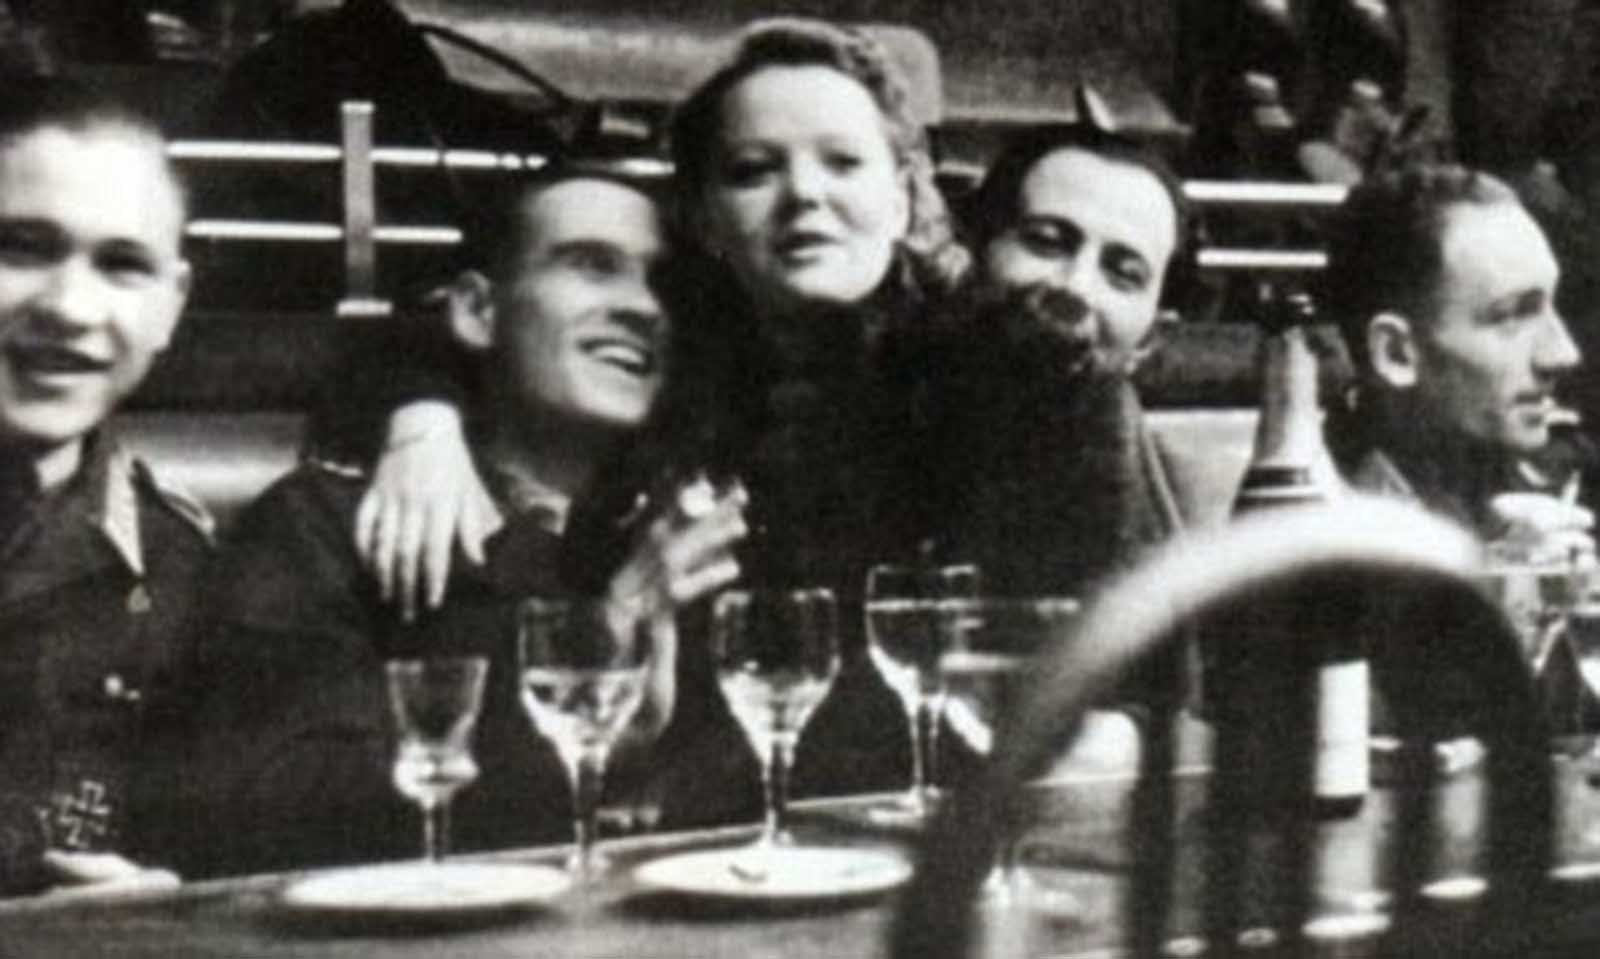 Festival atmosphere: A French woman cavorting with members of Hitler's SS in bars and cabarets. To say that all these women had no choice is a bit much.